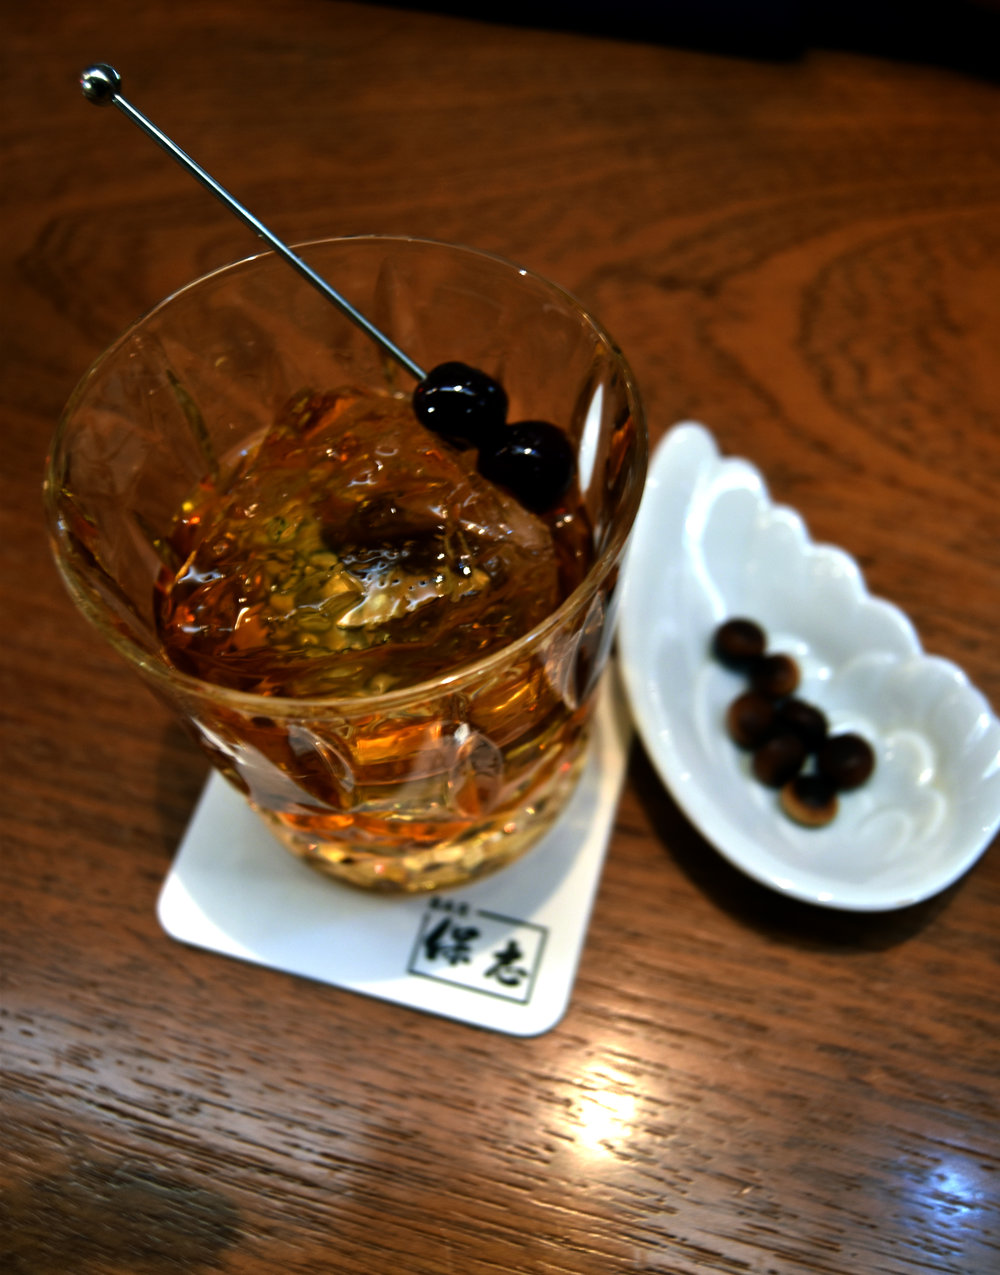 Whisky cocktail with chocolate snacks paired